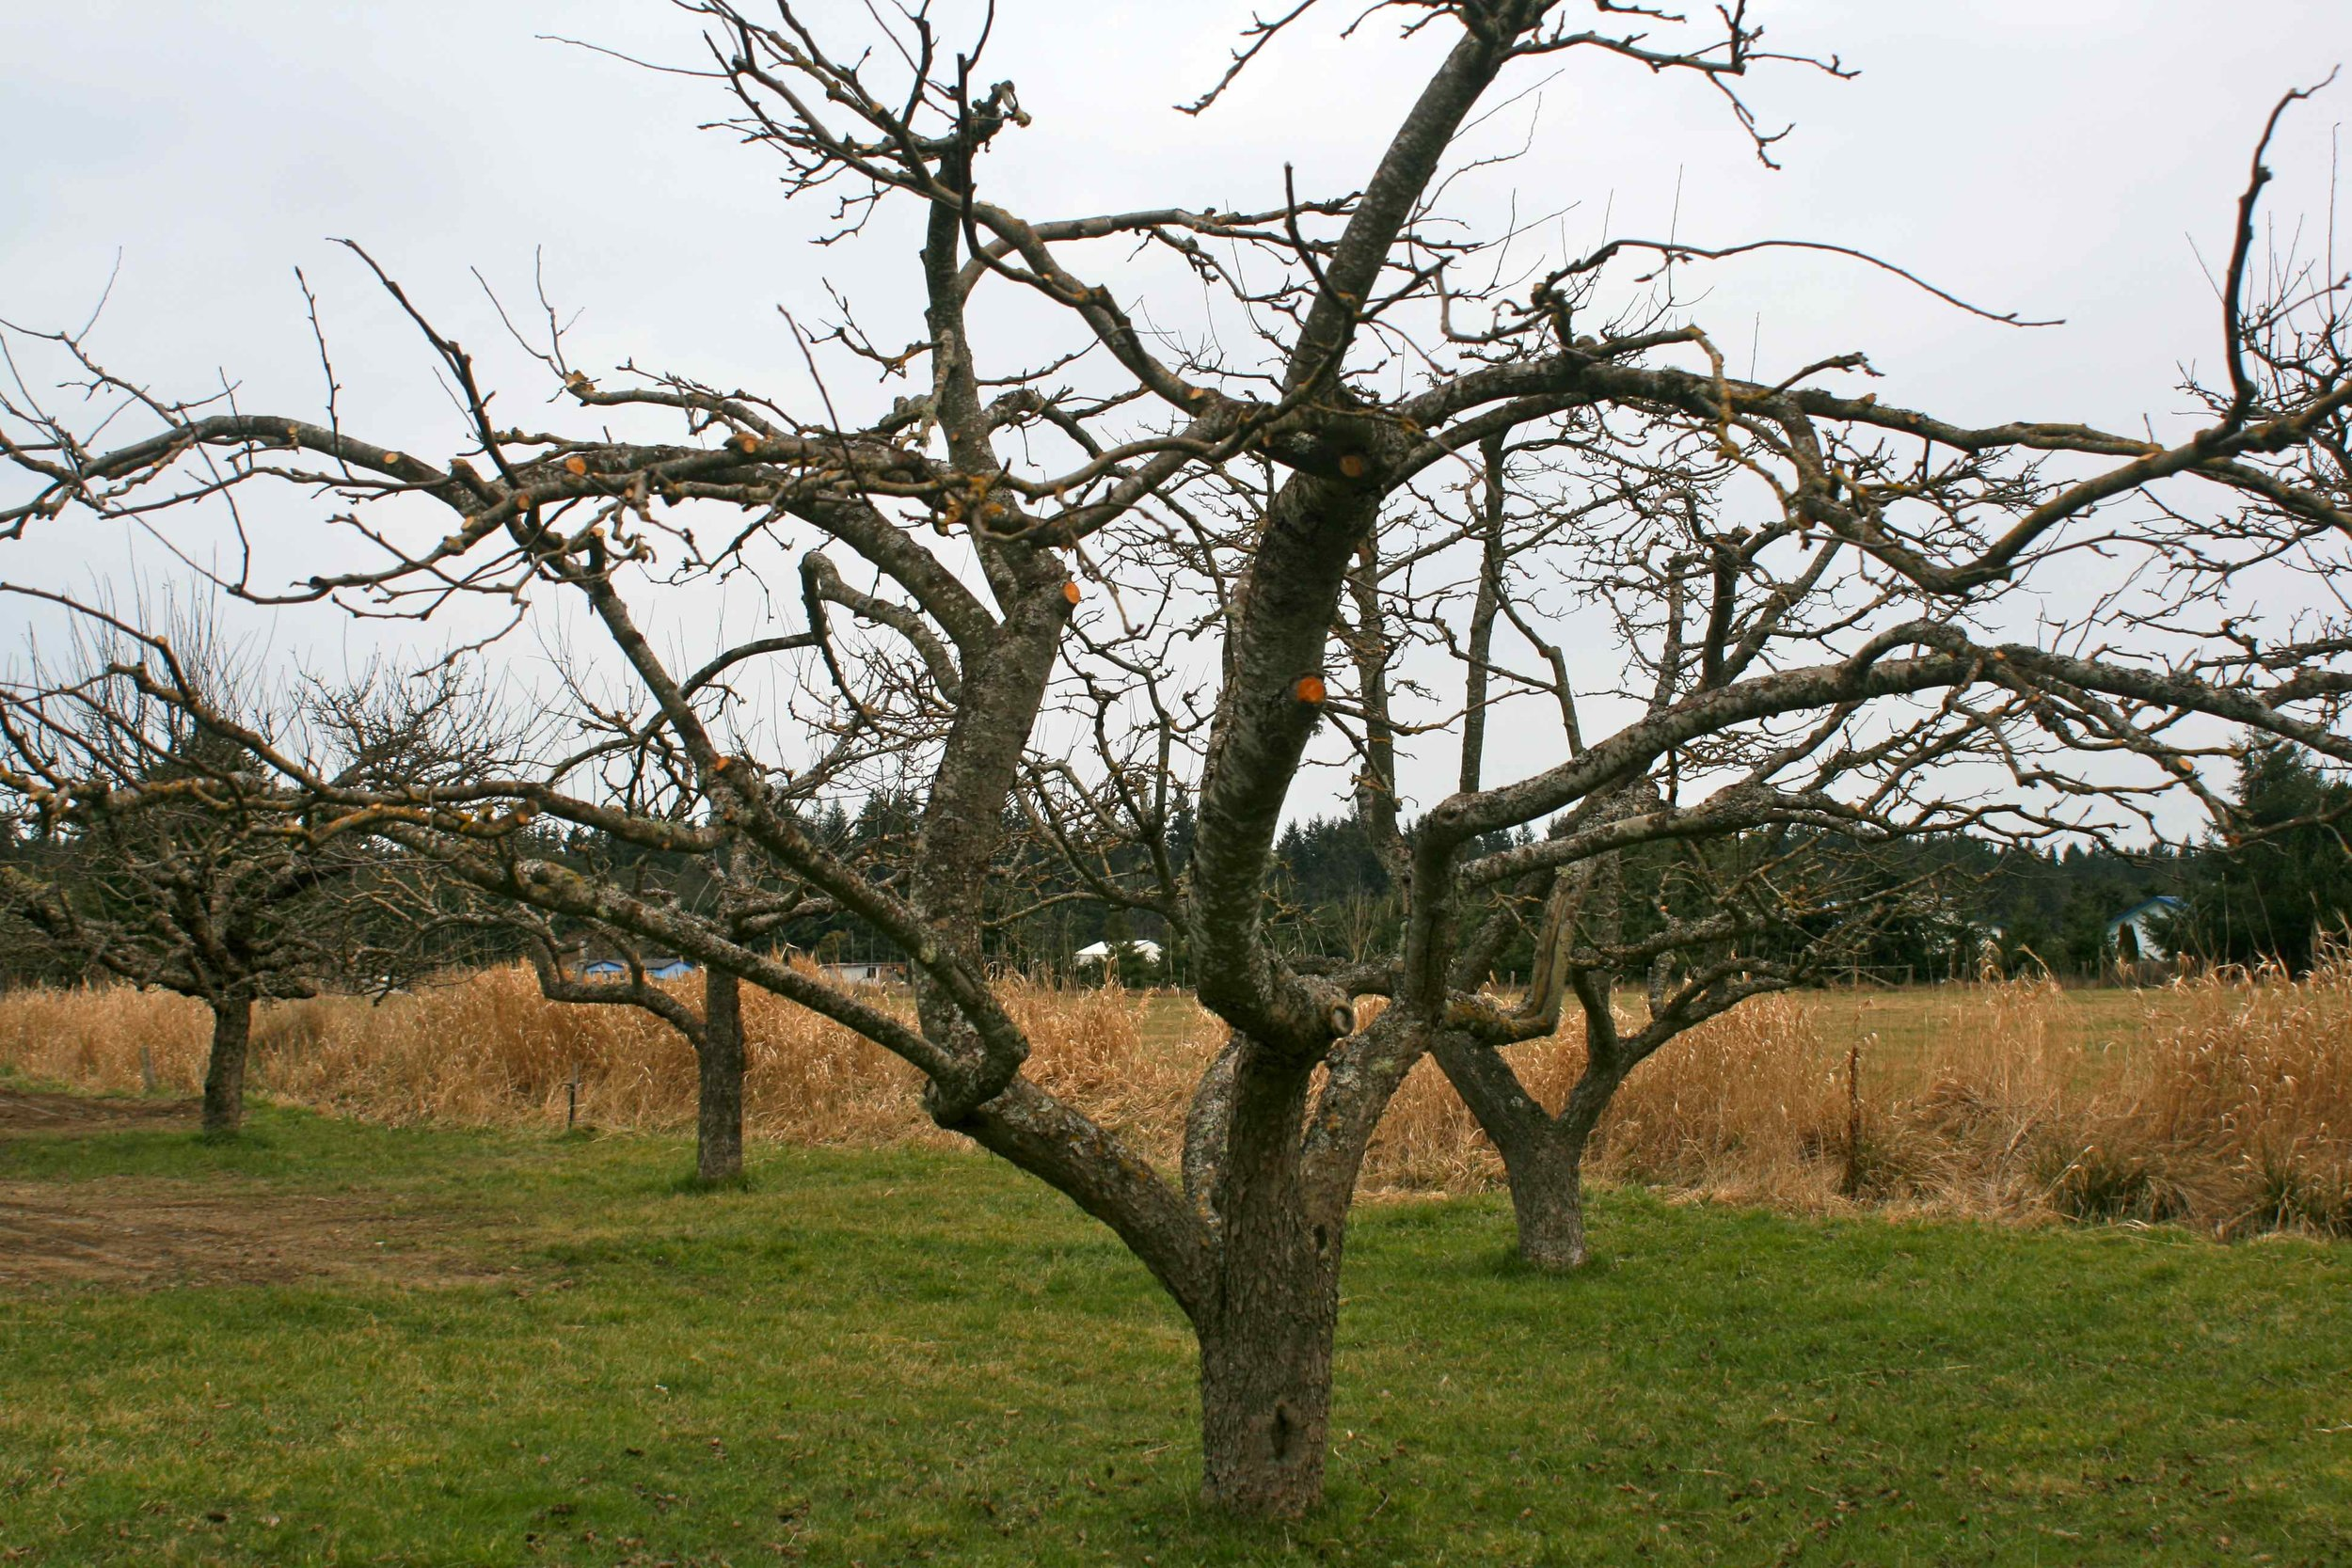 Well-pruned apple trees, opened up to allow light and air circulation. Photo: Curran Apple Orchard.